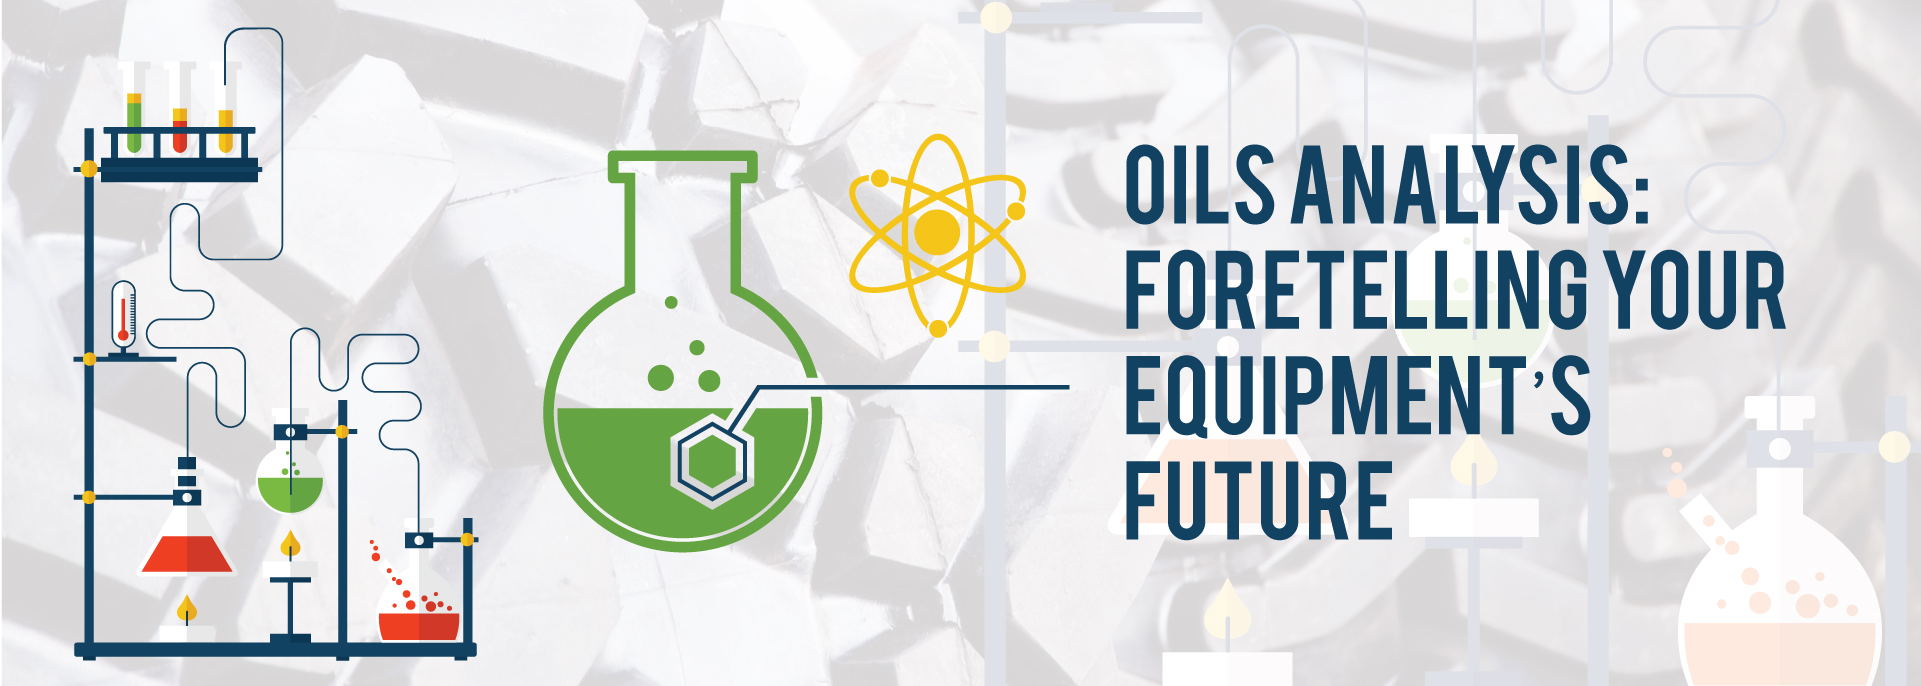 Oils Analysis: Foretelling Your Equipment's Future | ADI Agency | Protect My Iron